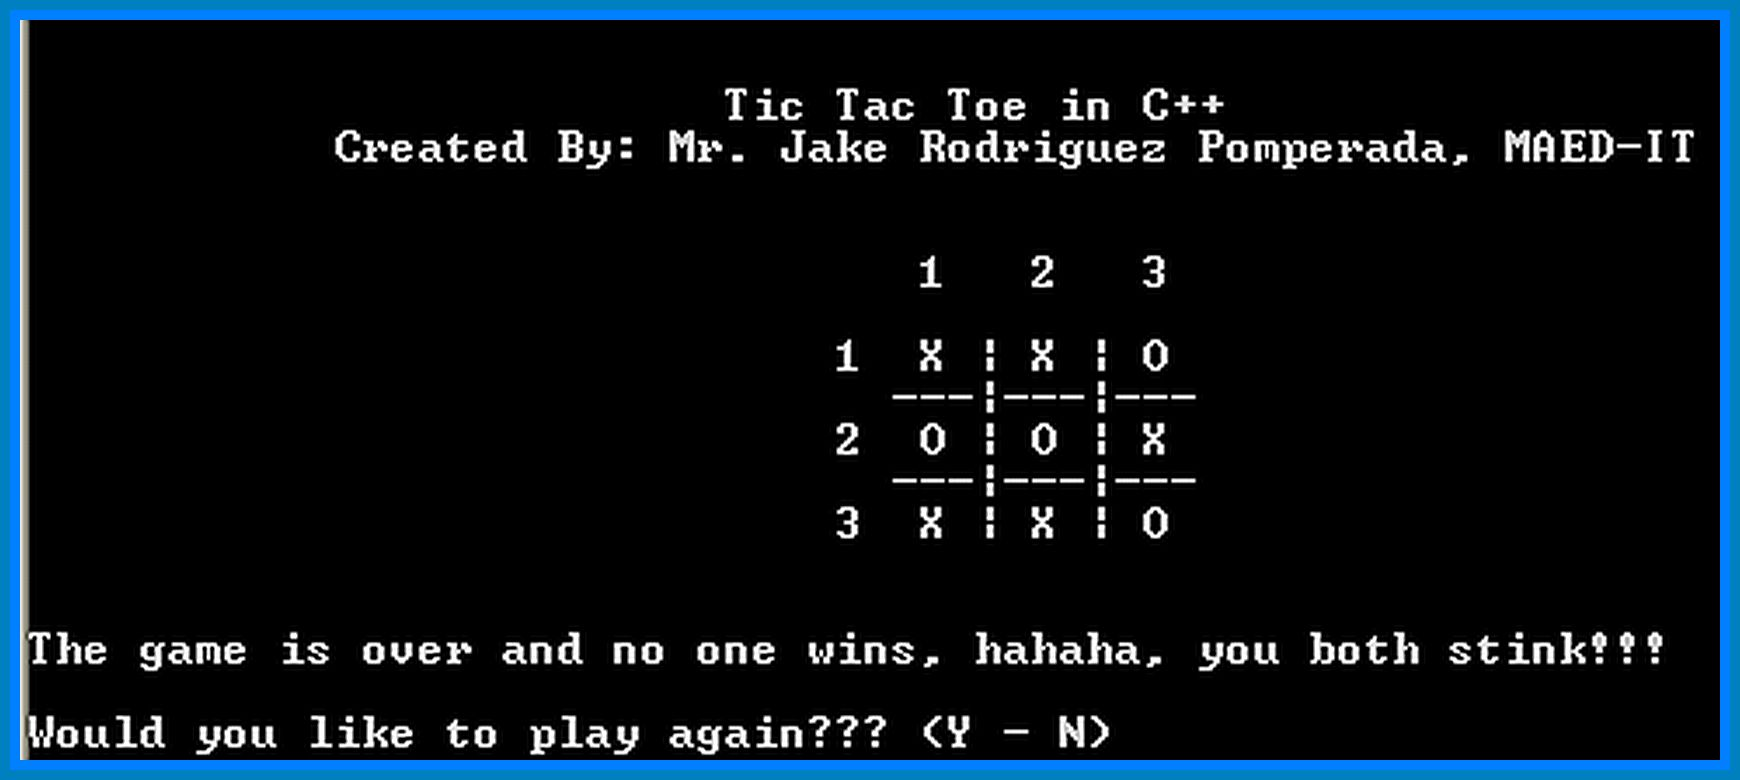 tic tac toe in c programming About this code i called it tic tac toe in c++ because the firt version of my code is written entirely in c language i hope my code will help somebody you are.